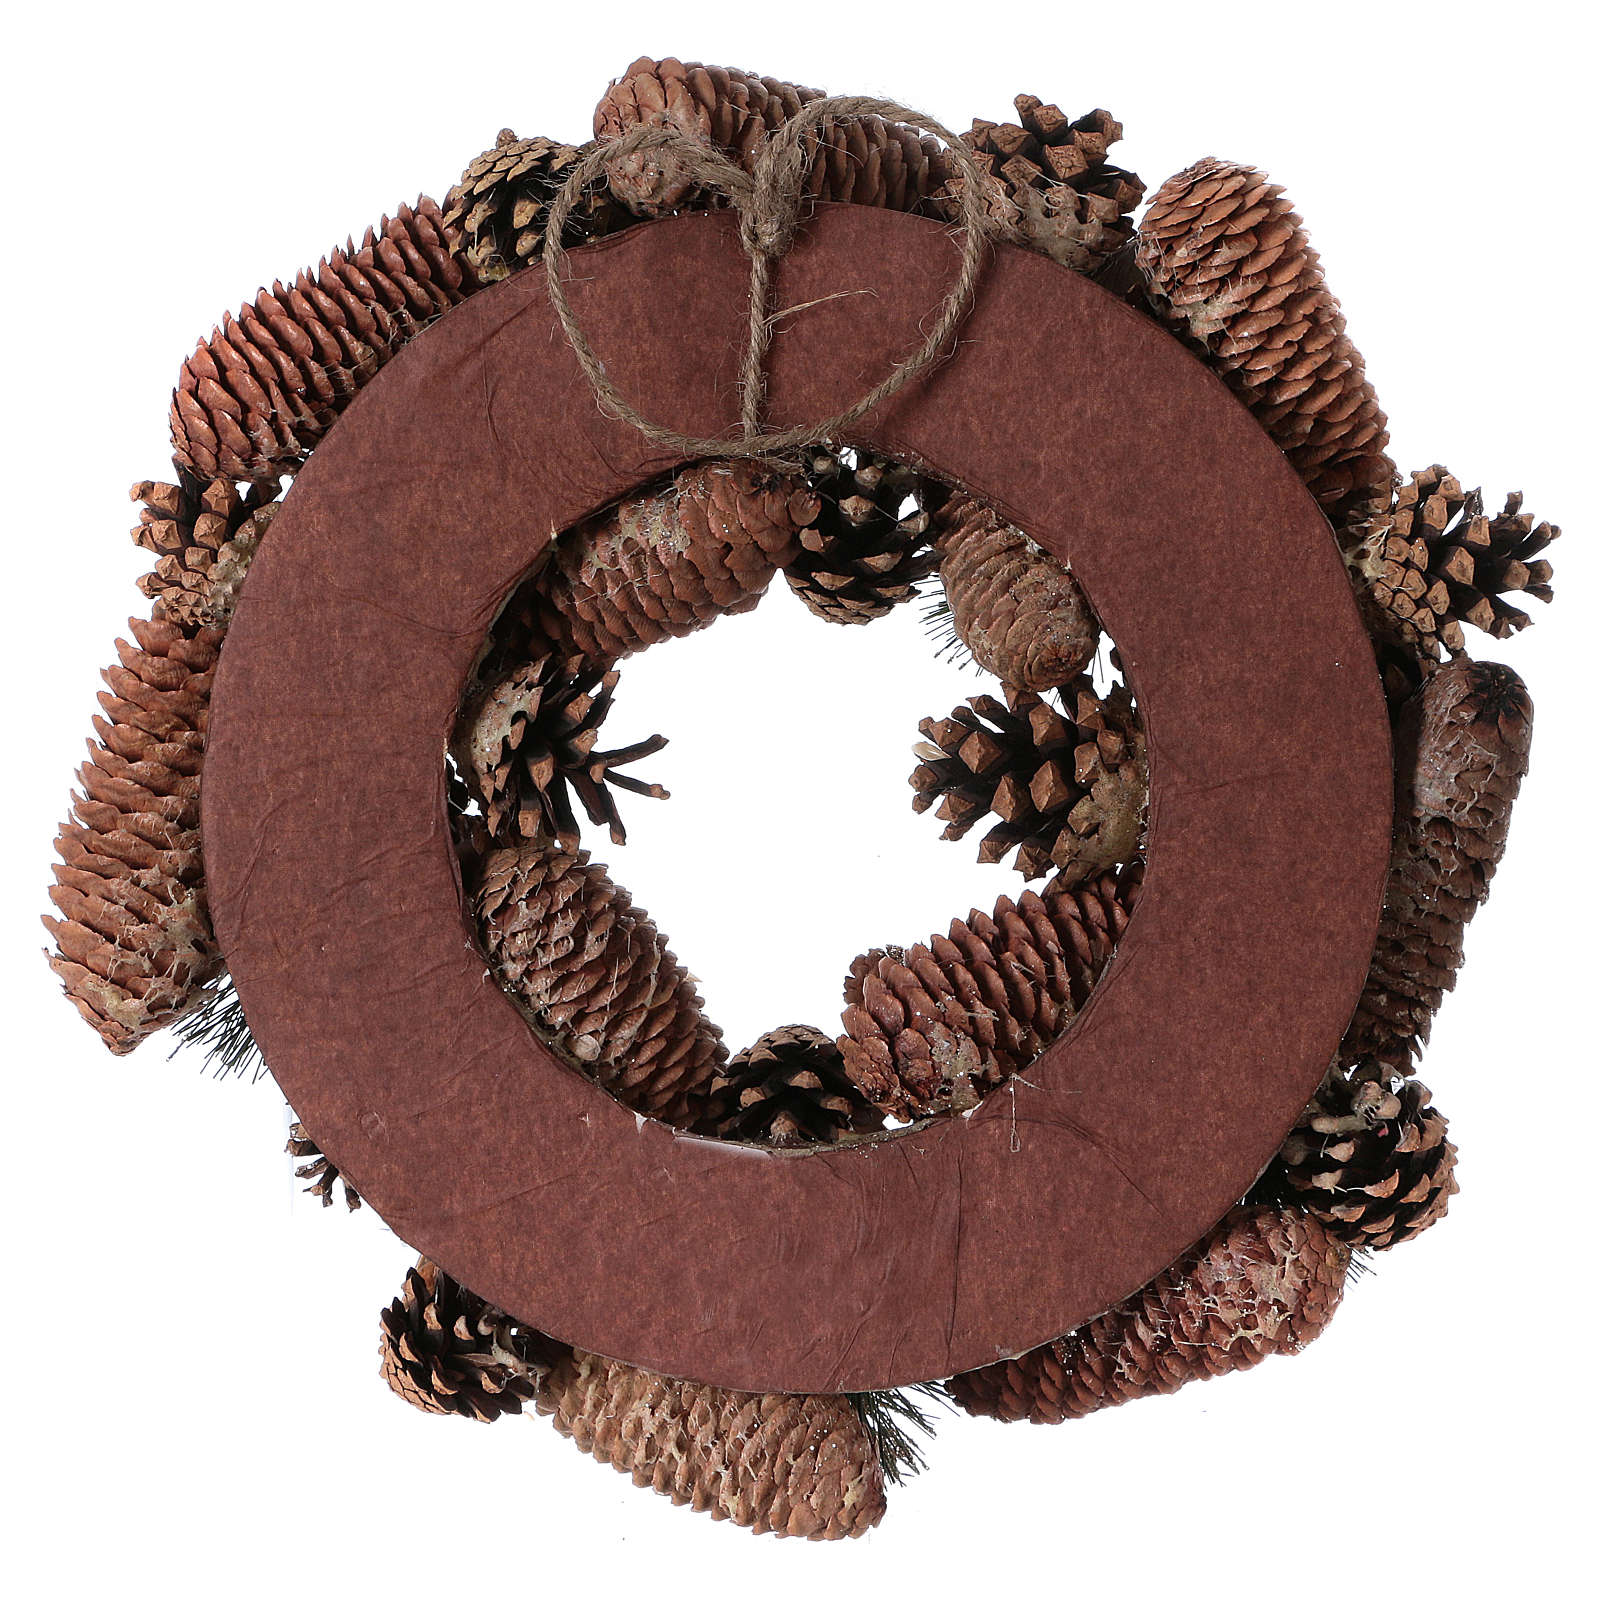 Advent wreath with pine cones and hazelnuts diam. 50 cm 3